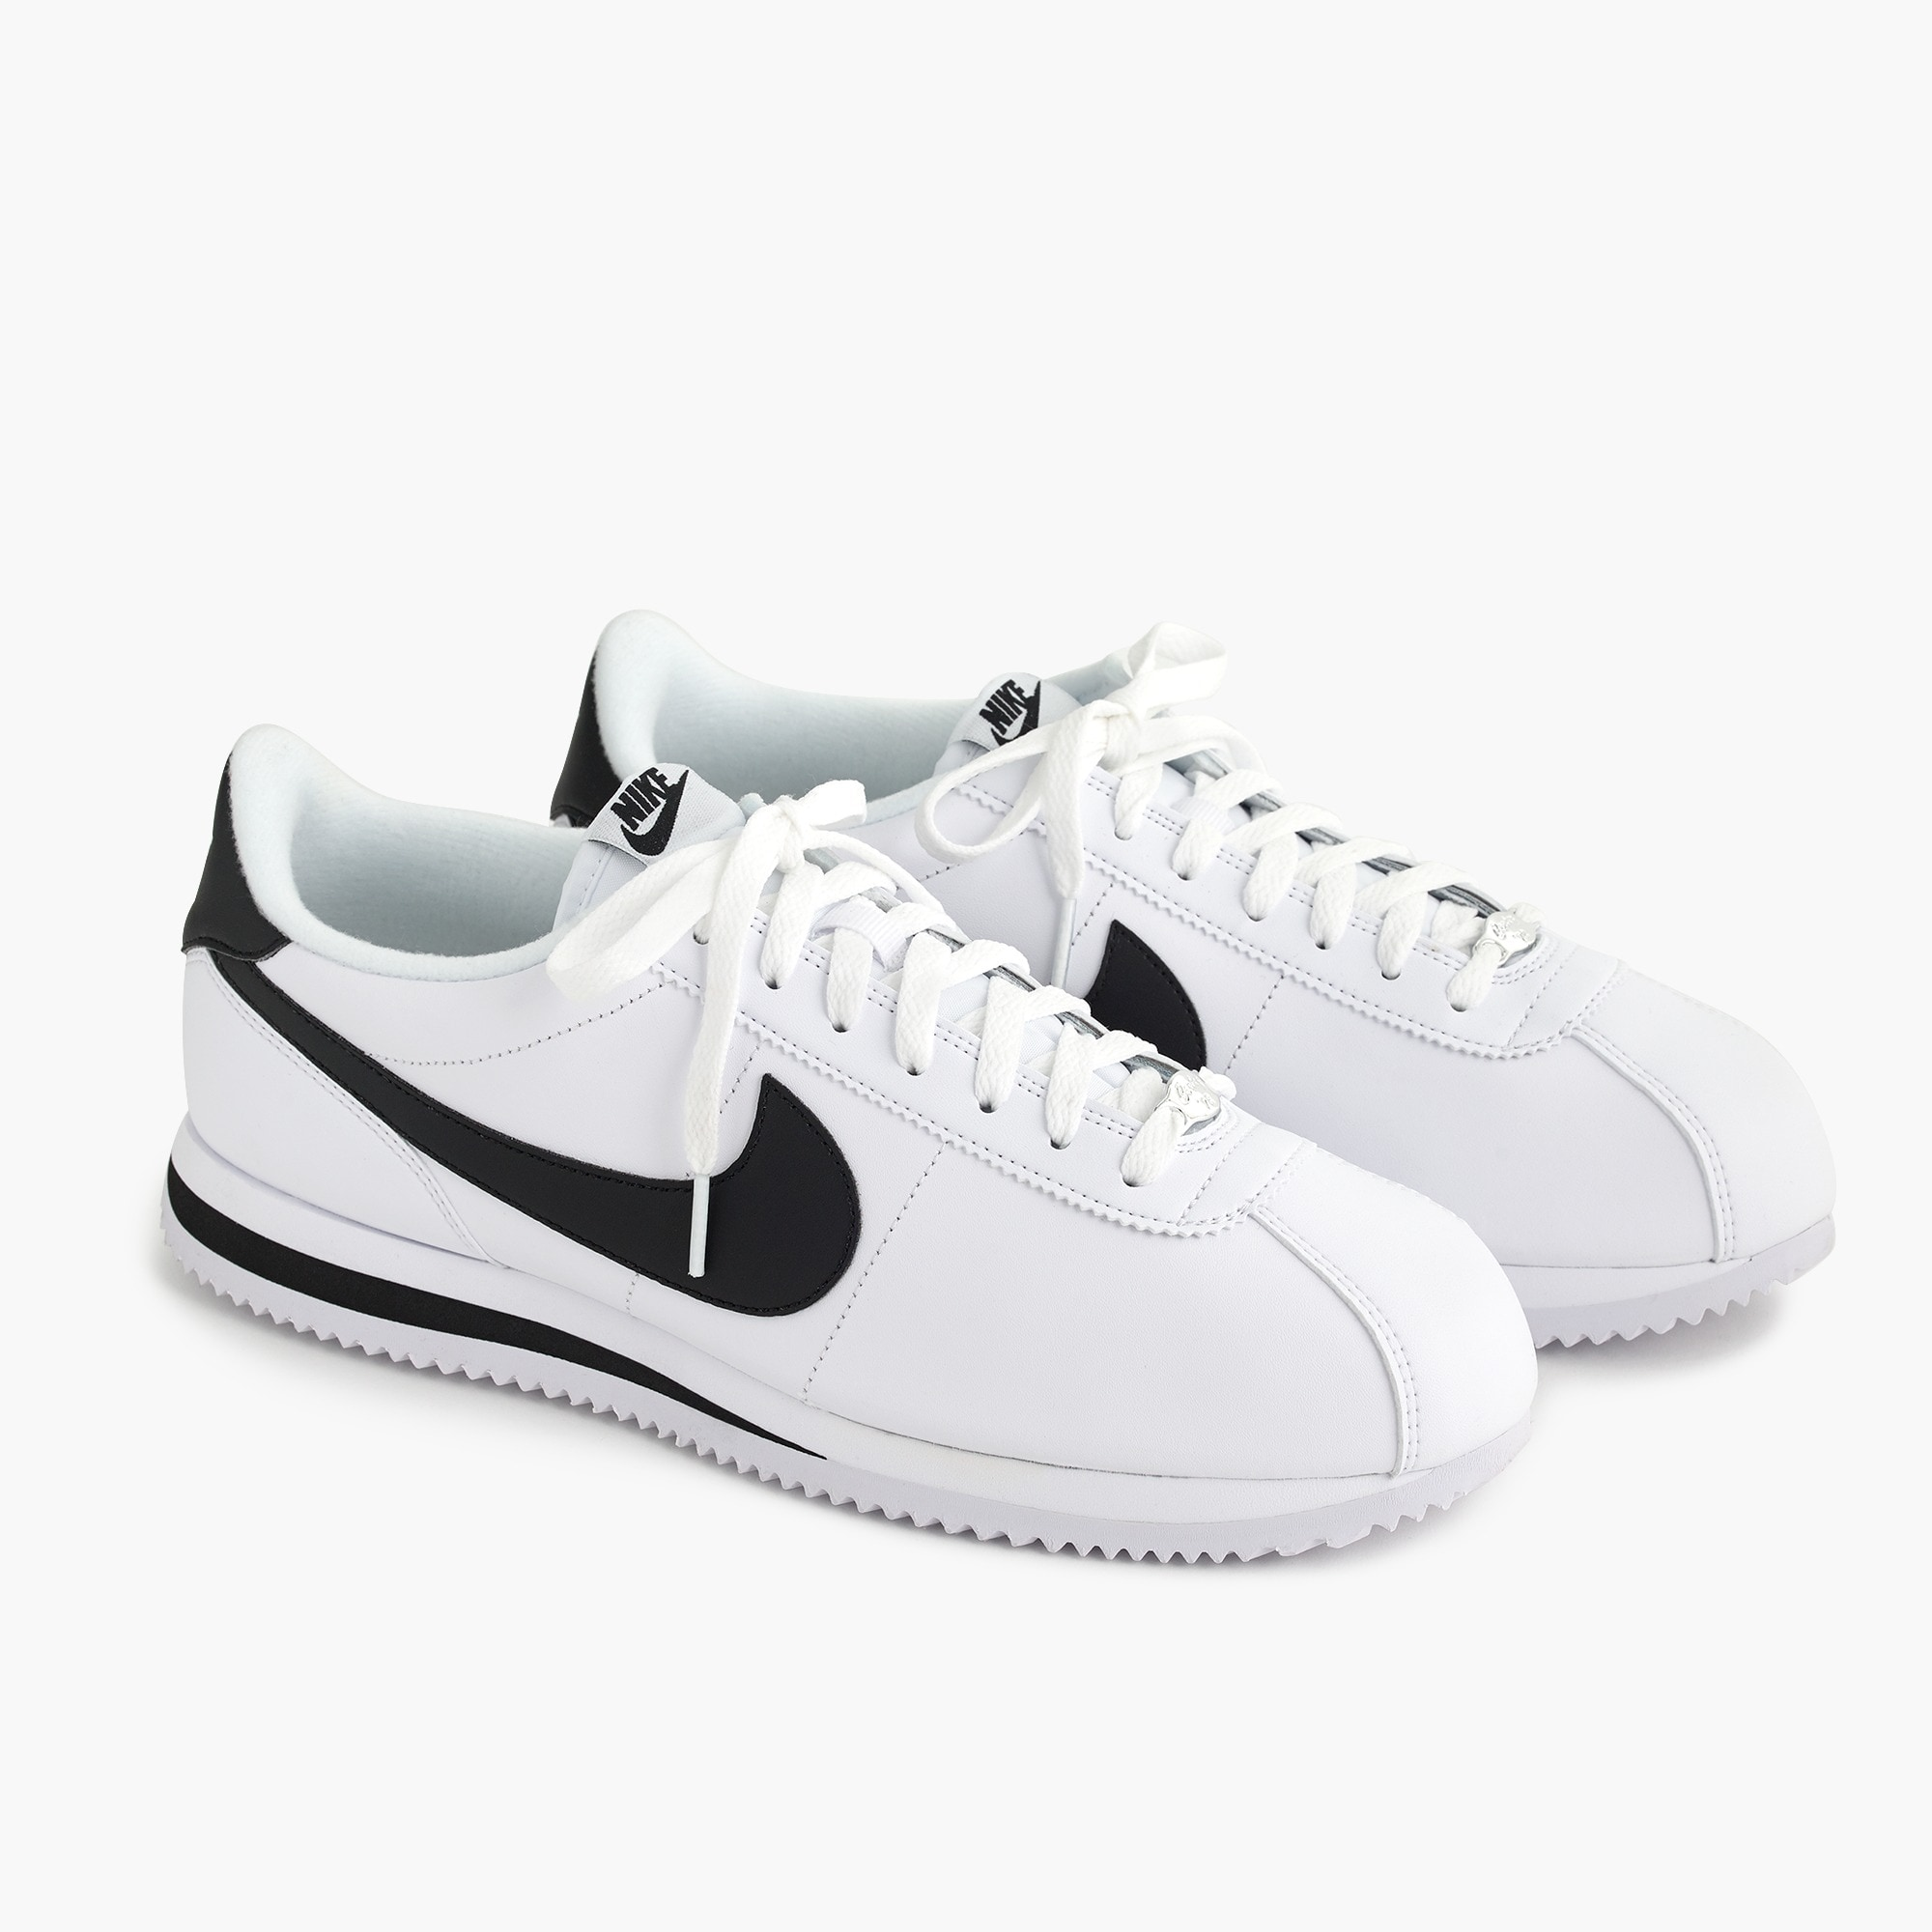 mens Nike® Cortez sneakers in leather